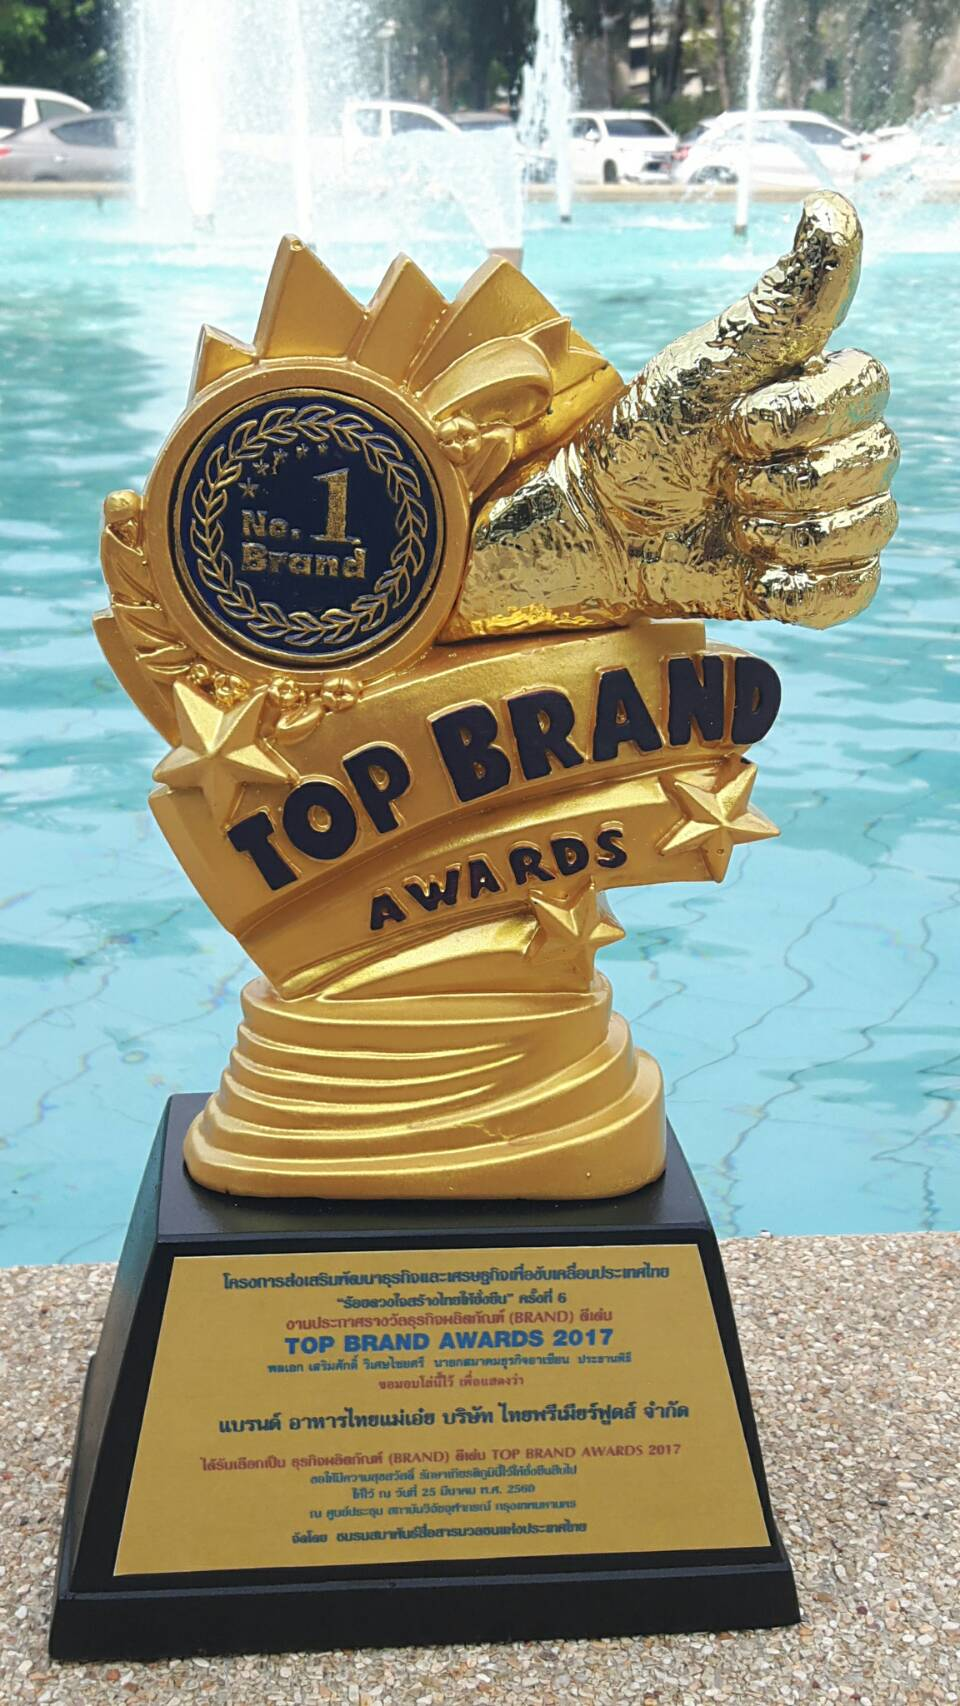 Top Brand Awards  2017